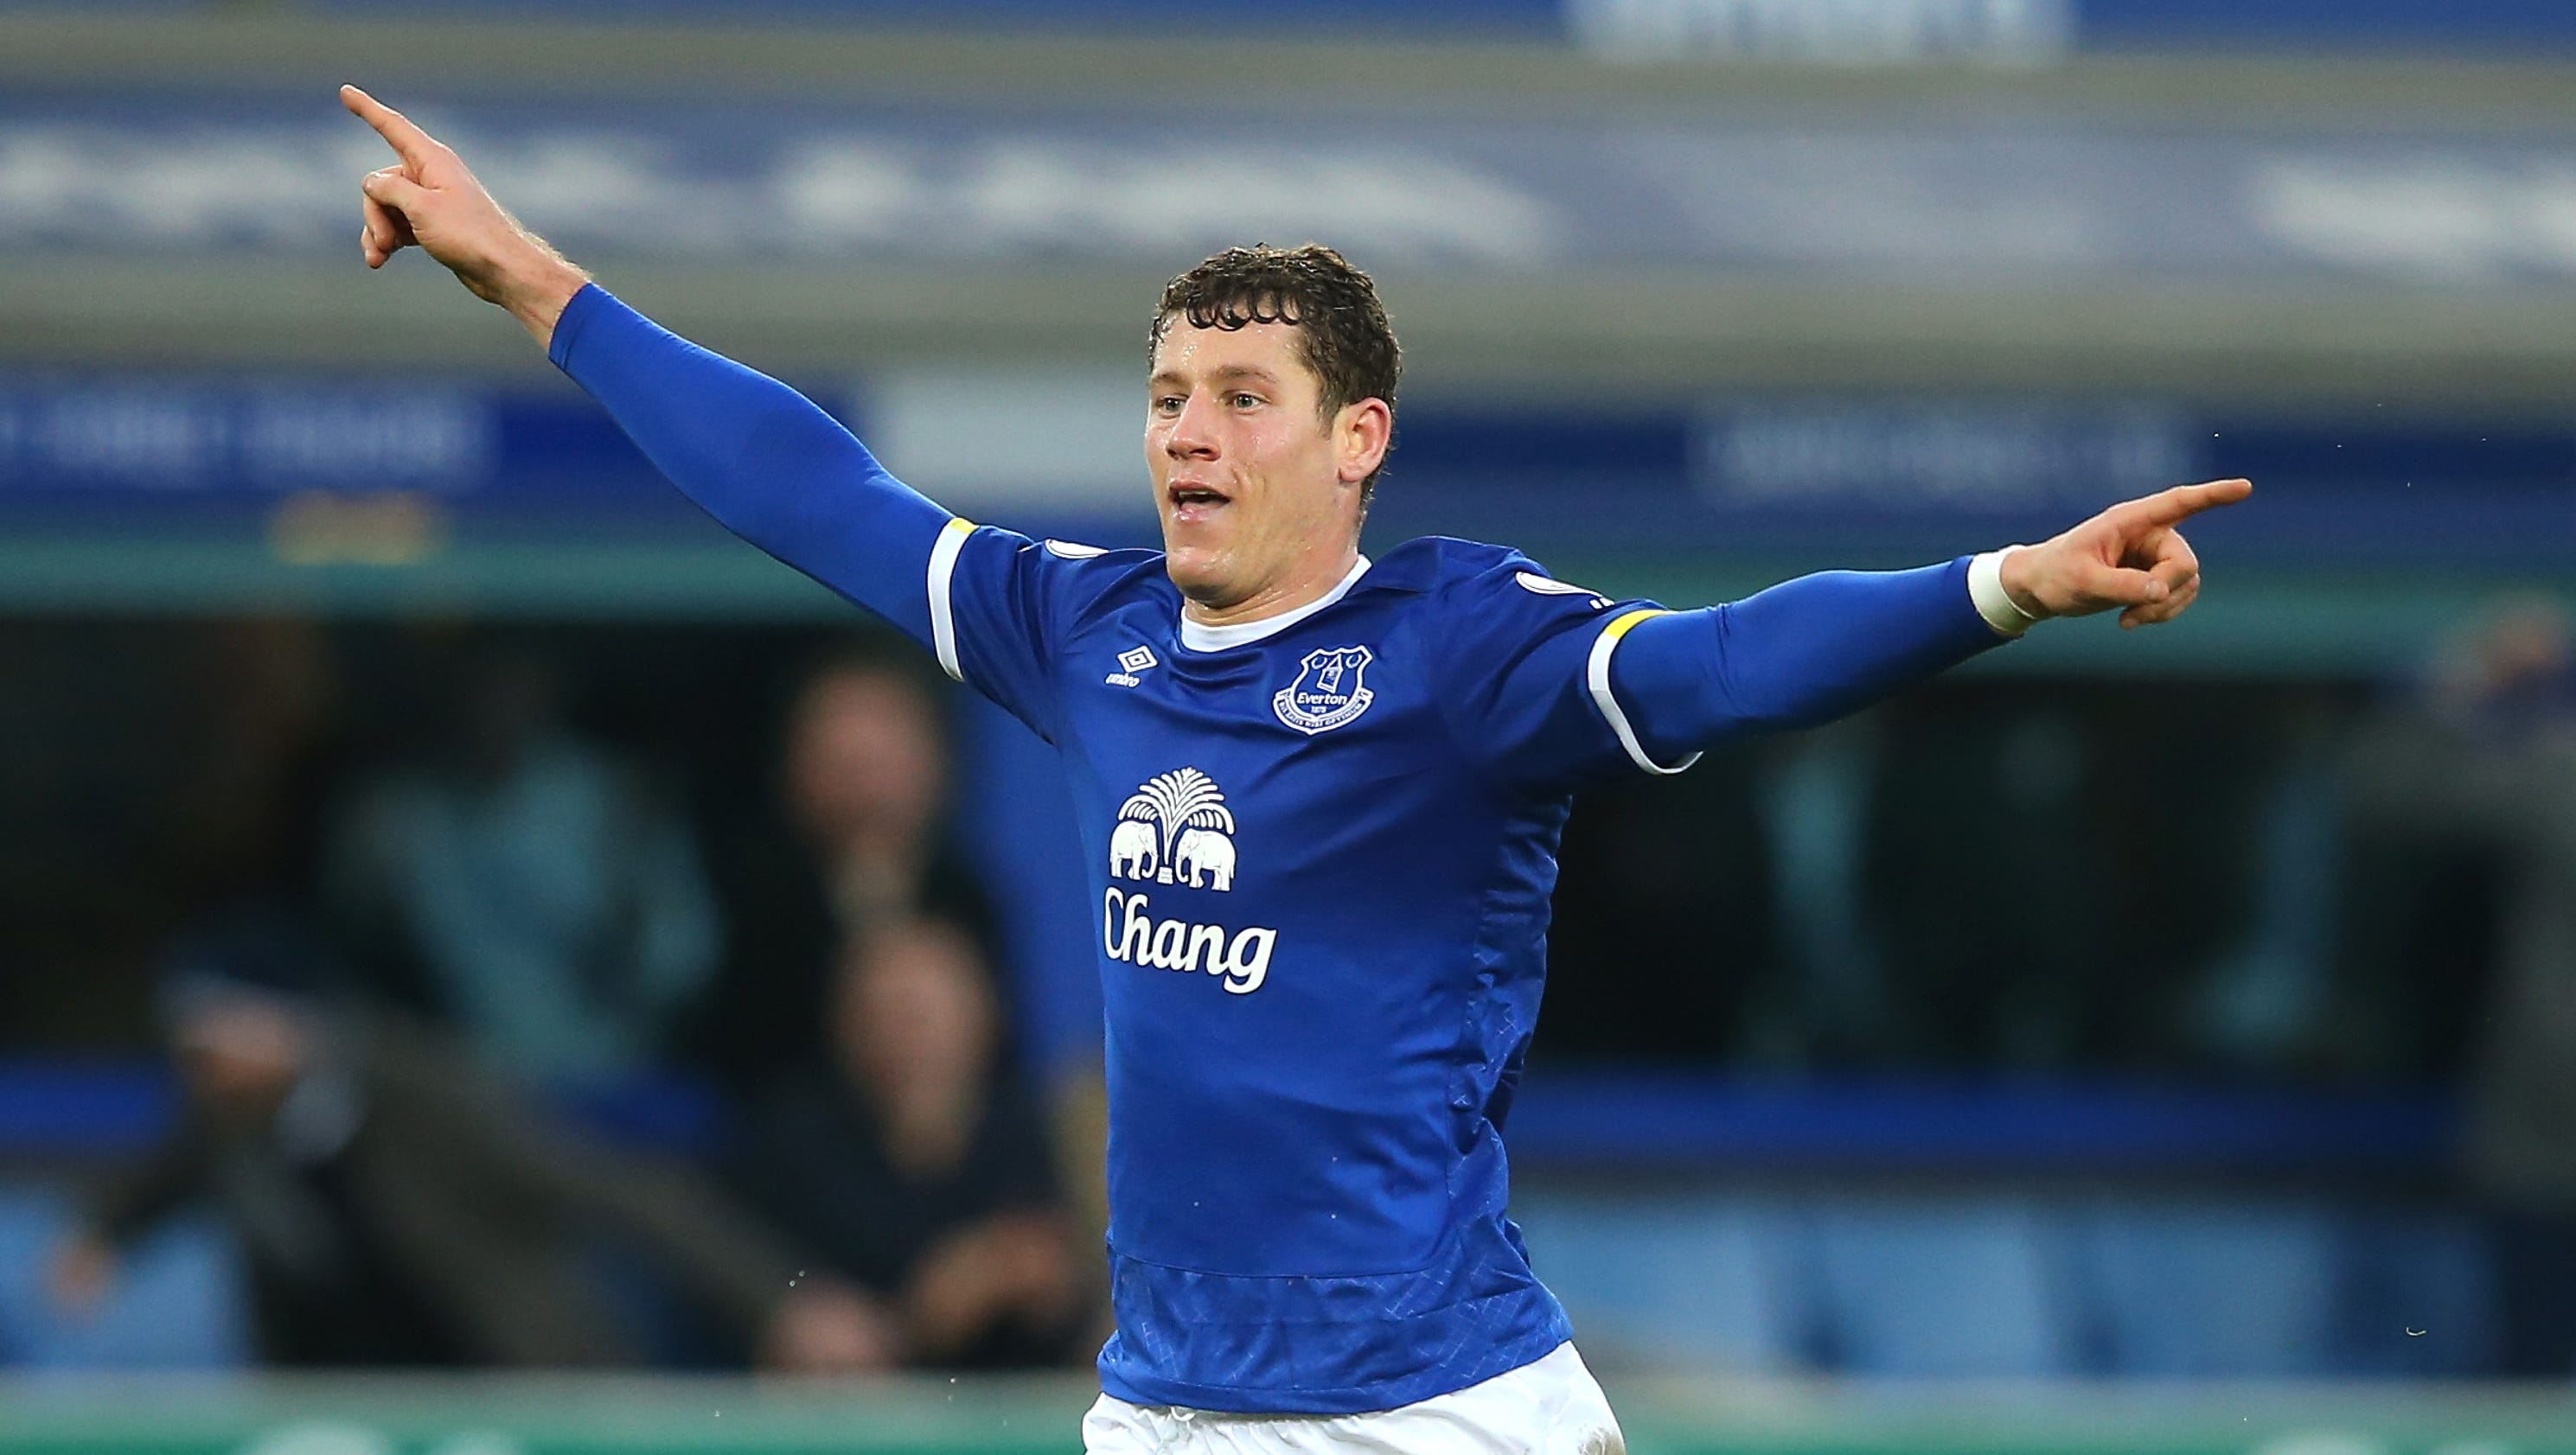 Ross Barkley Signs For Chelsea, Looks To Revive His Career